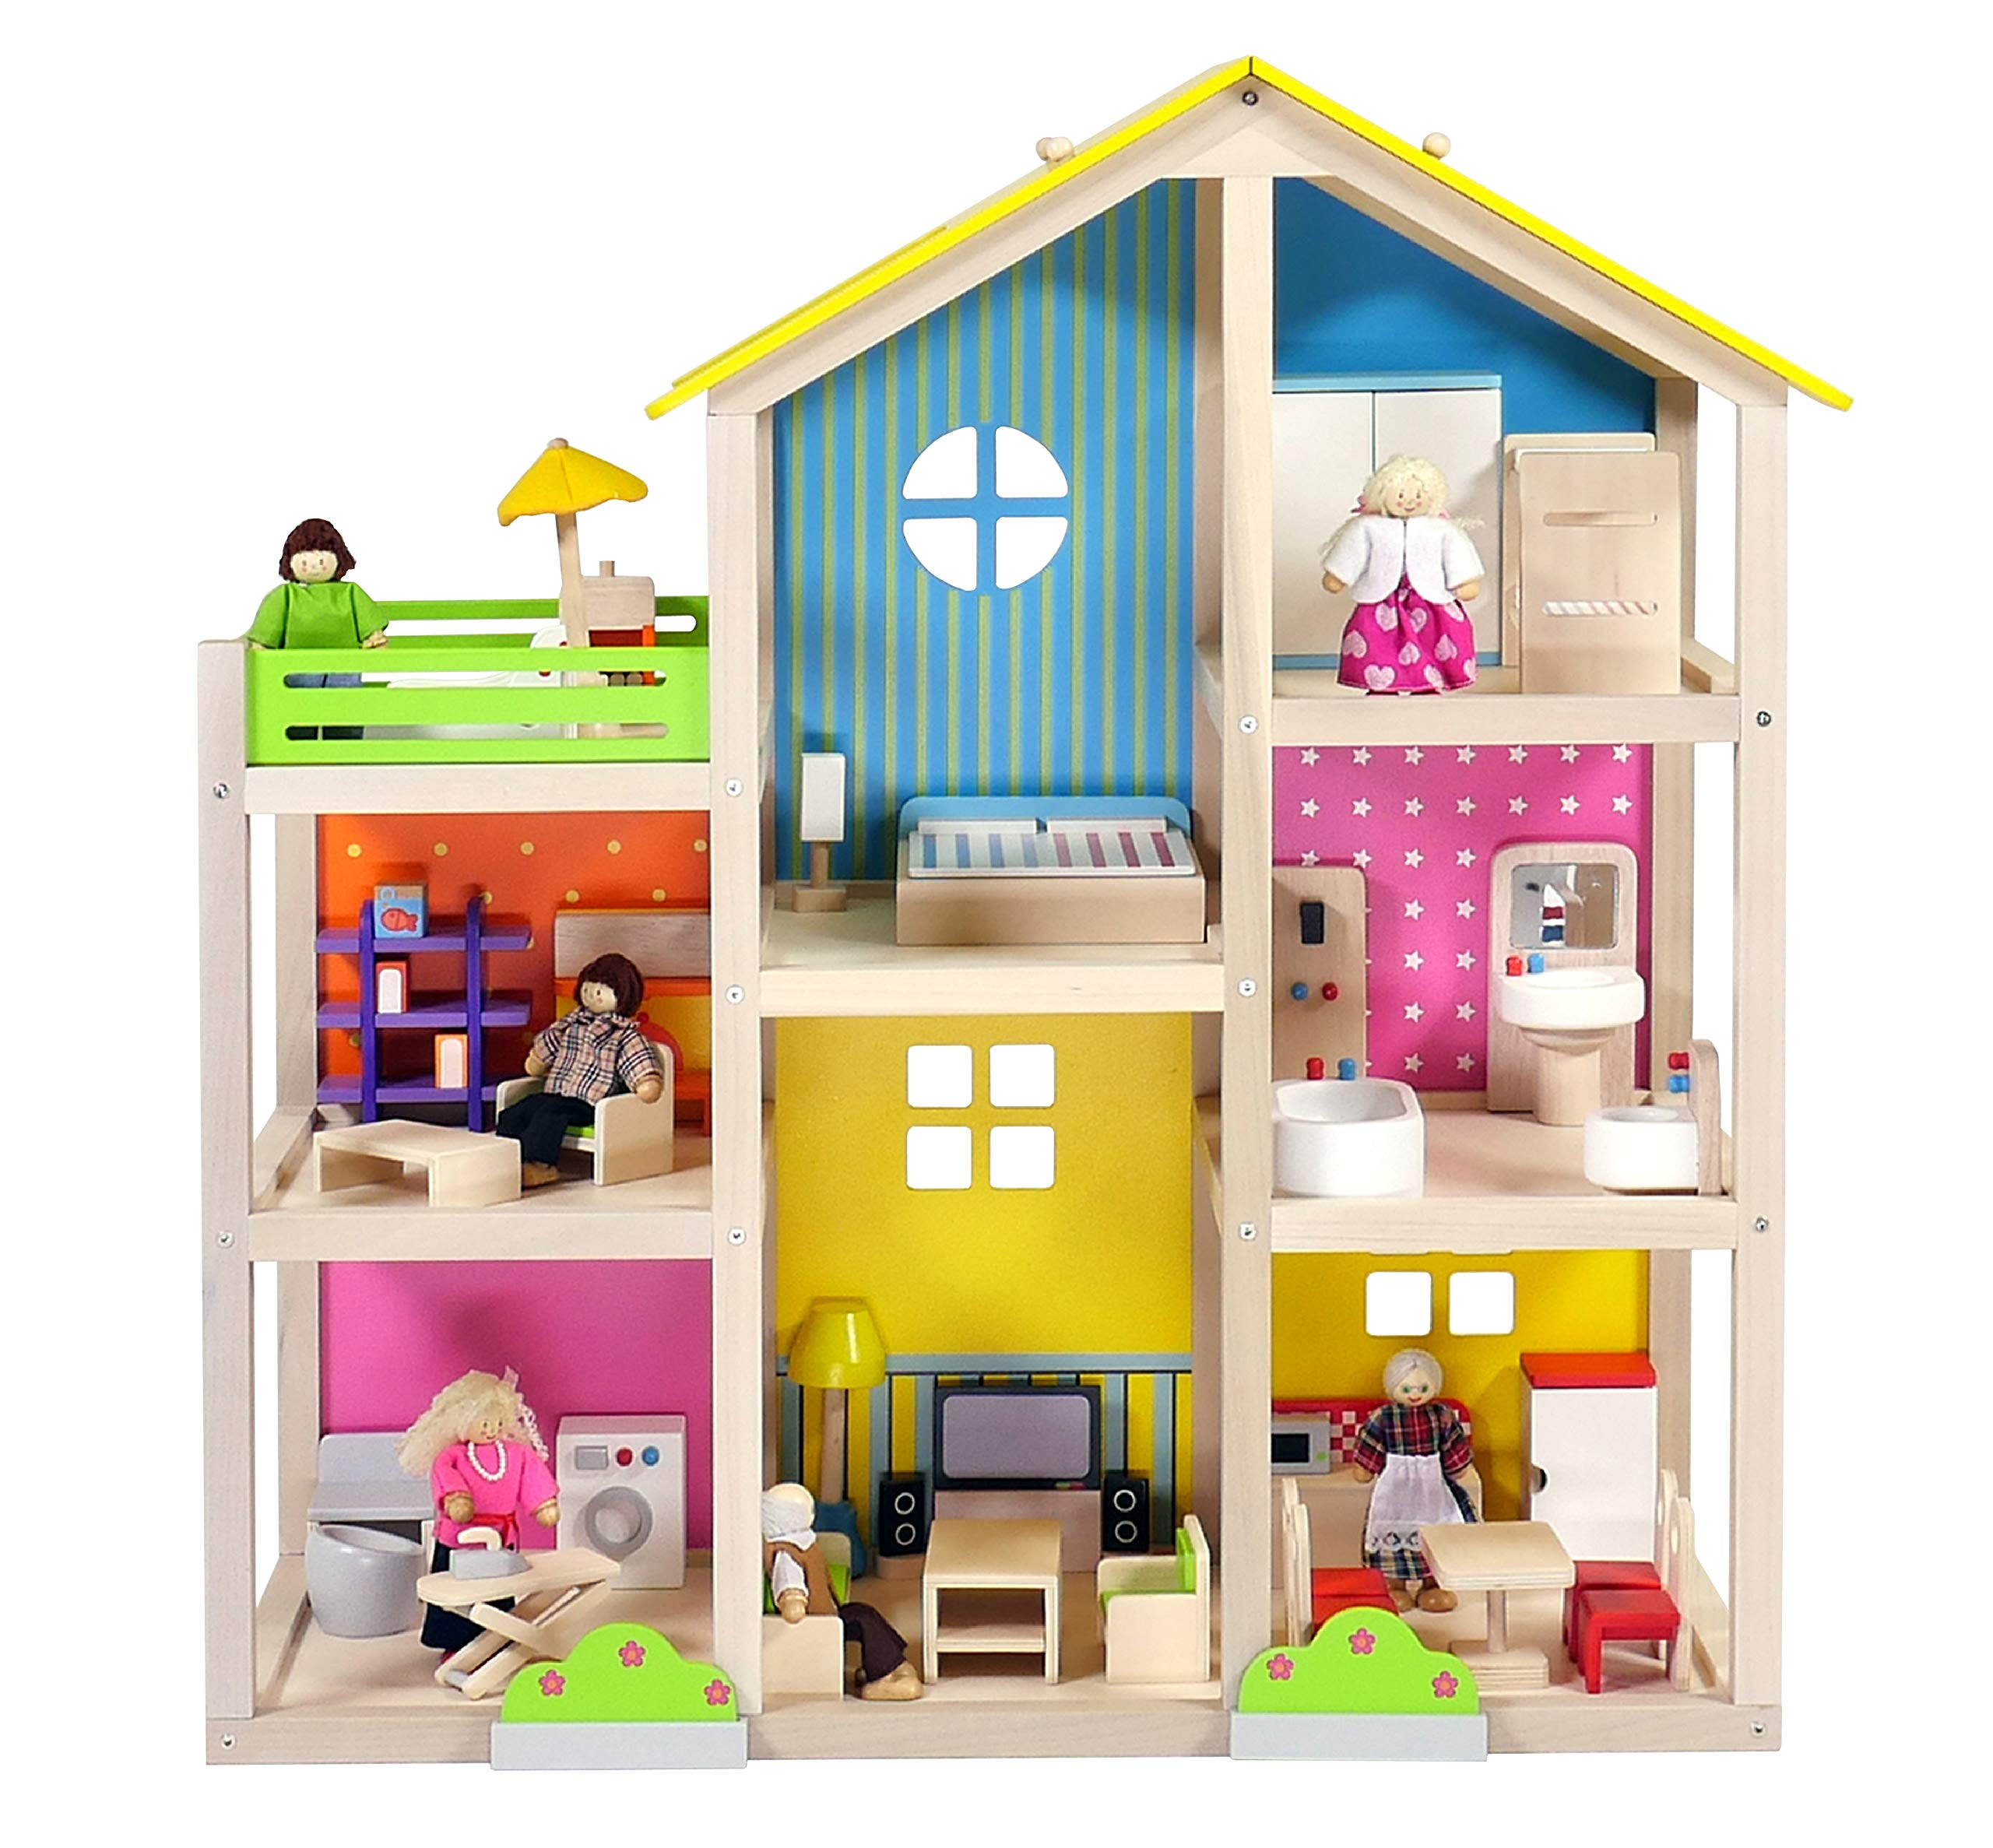 Brainsmith 3 Level Wooden Dollhouse Set With 40 Piece Mini Wooden Furniture And Accessories Non Toxic Educational Role Play Toy For Kids 3 8 Years Buy Online In Dominica At Dominica Desertcart Com Productid 113859452